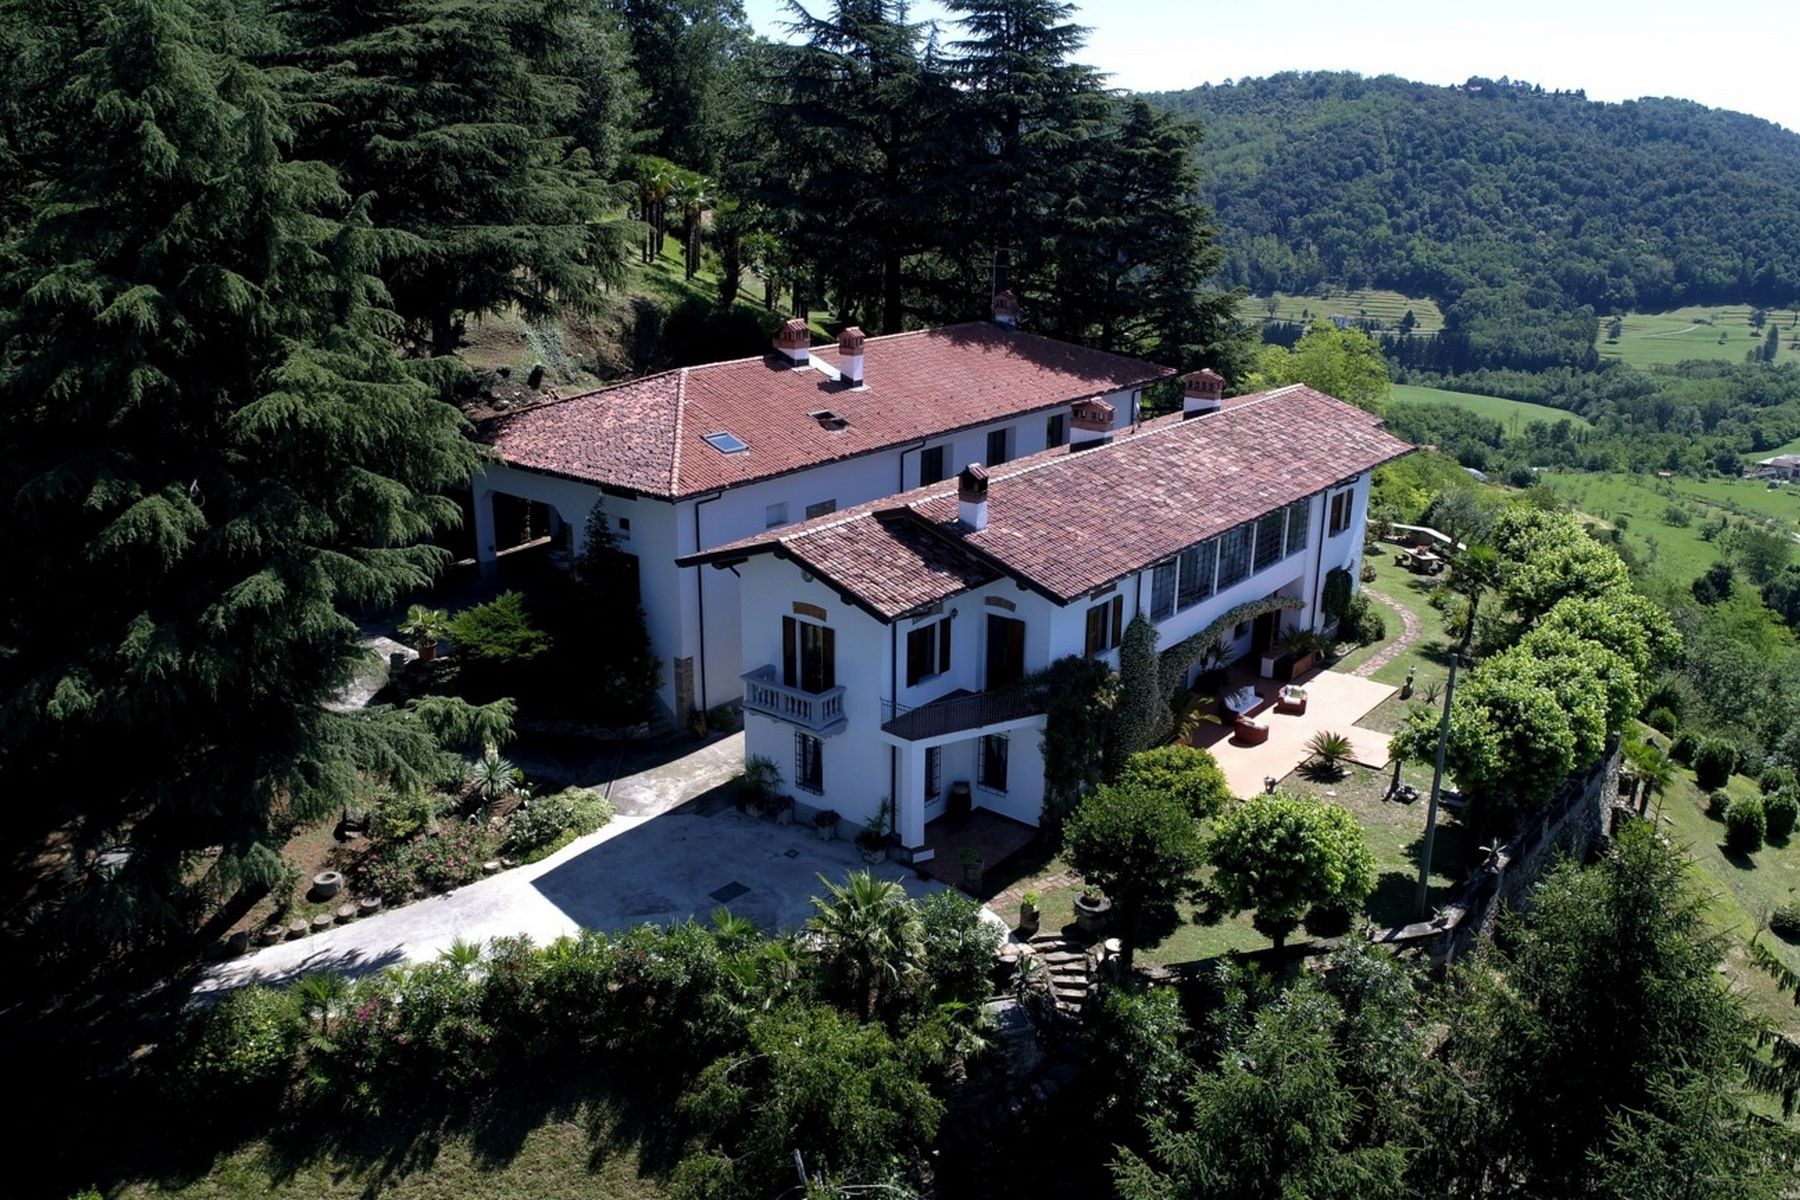 Single Family Home for Sale at Elegant villa dating back to the early 1900's via Santa Apollonia Other Lecco, Lecco 23873 Italy